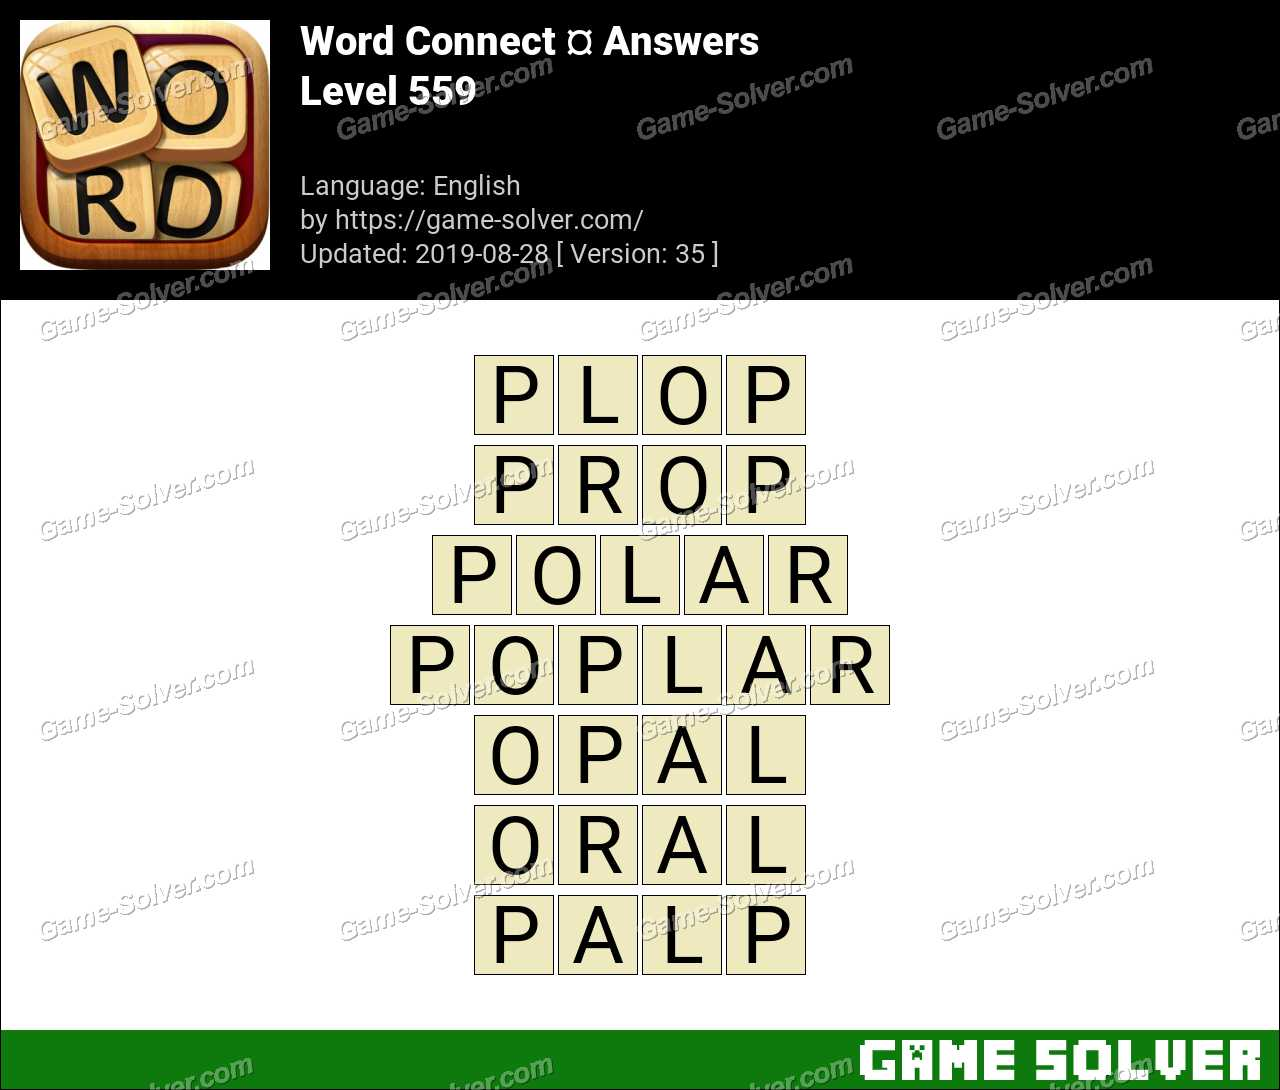 Word Connect Level 559 Answers